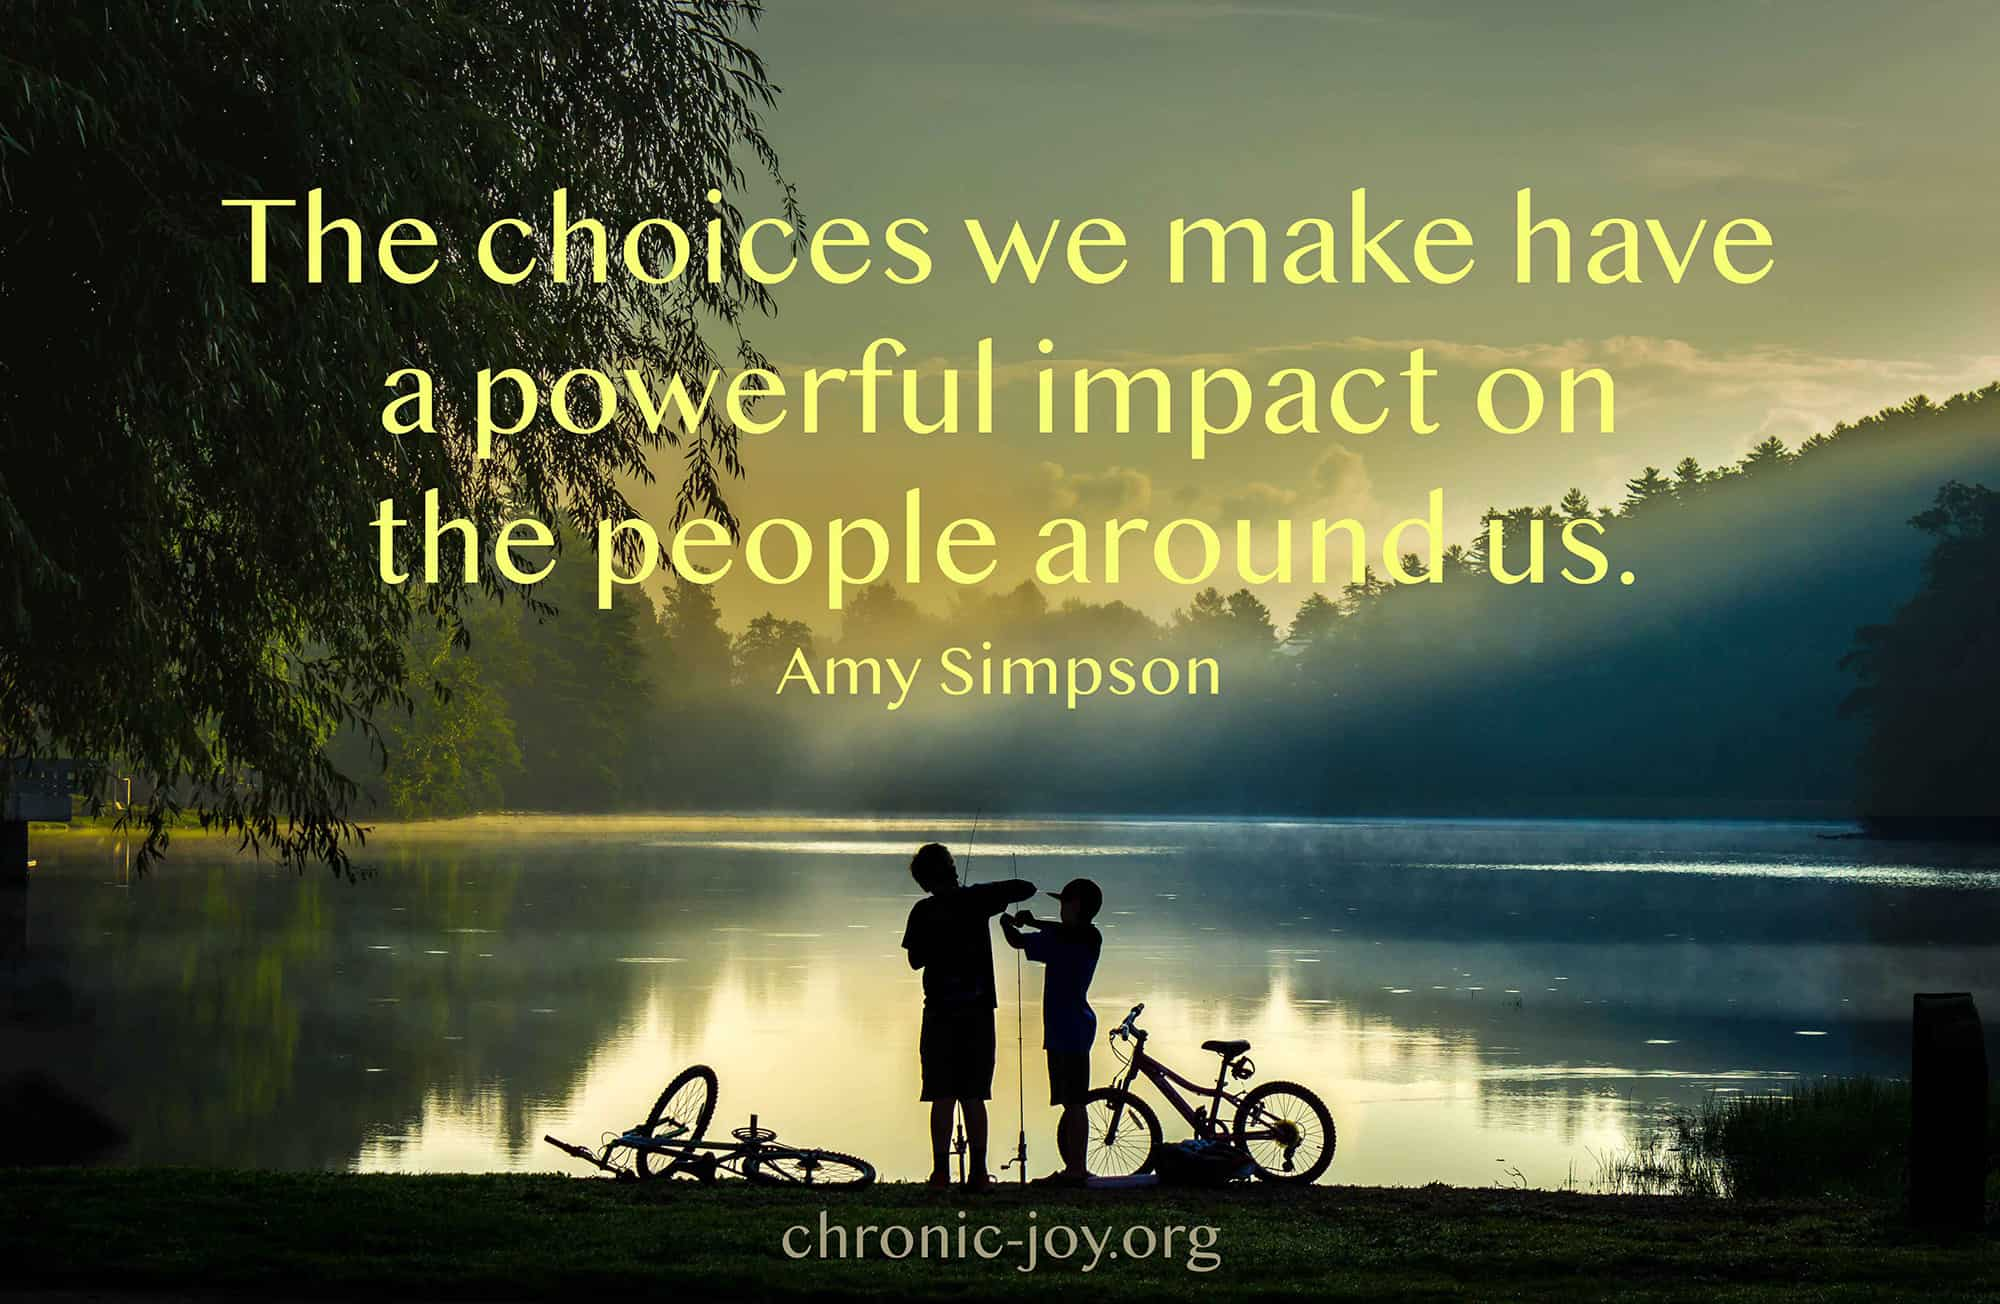 The choices we make have a powerful impact on the people around us